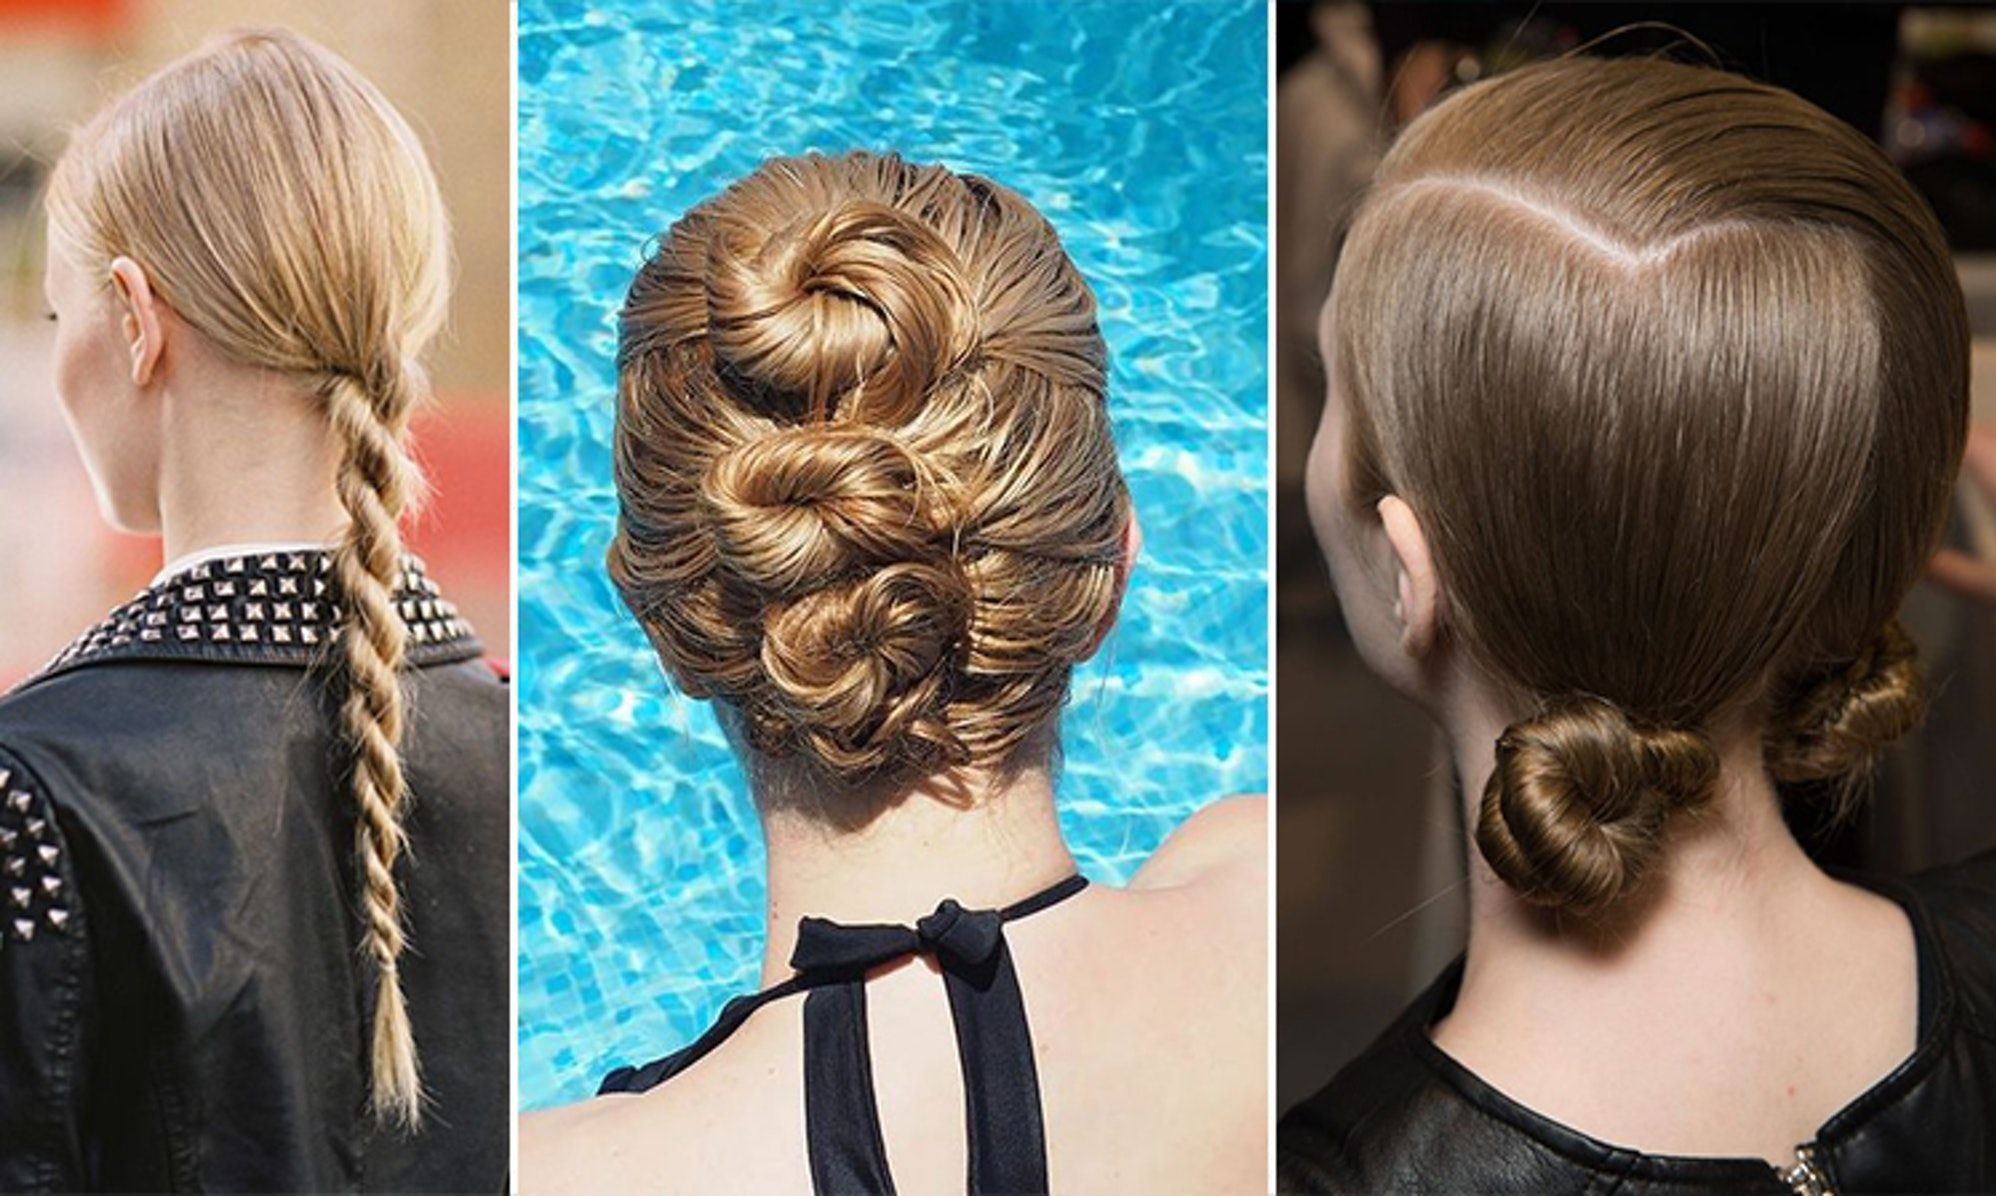 easy hairstyles for wet hair you can do in the bathroom after pool